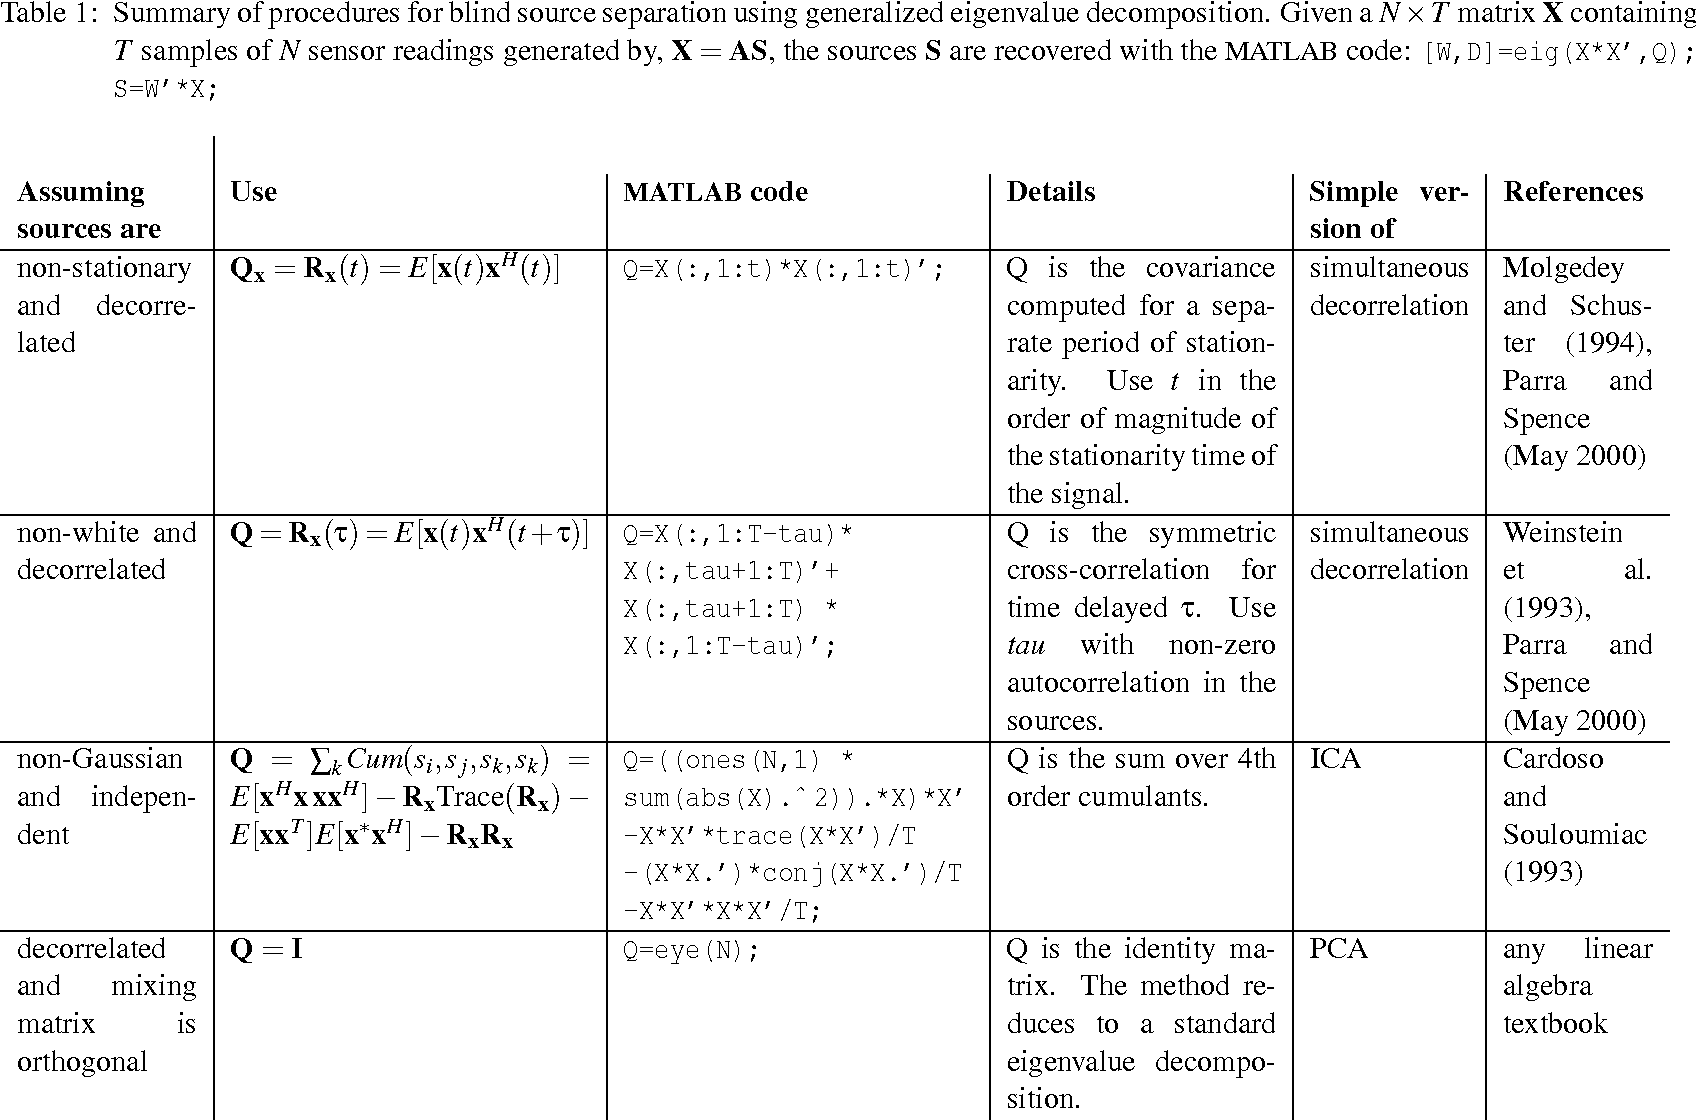 Table 1 from Blind Source Separation via Generalized Eigenvalue